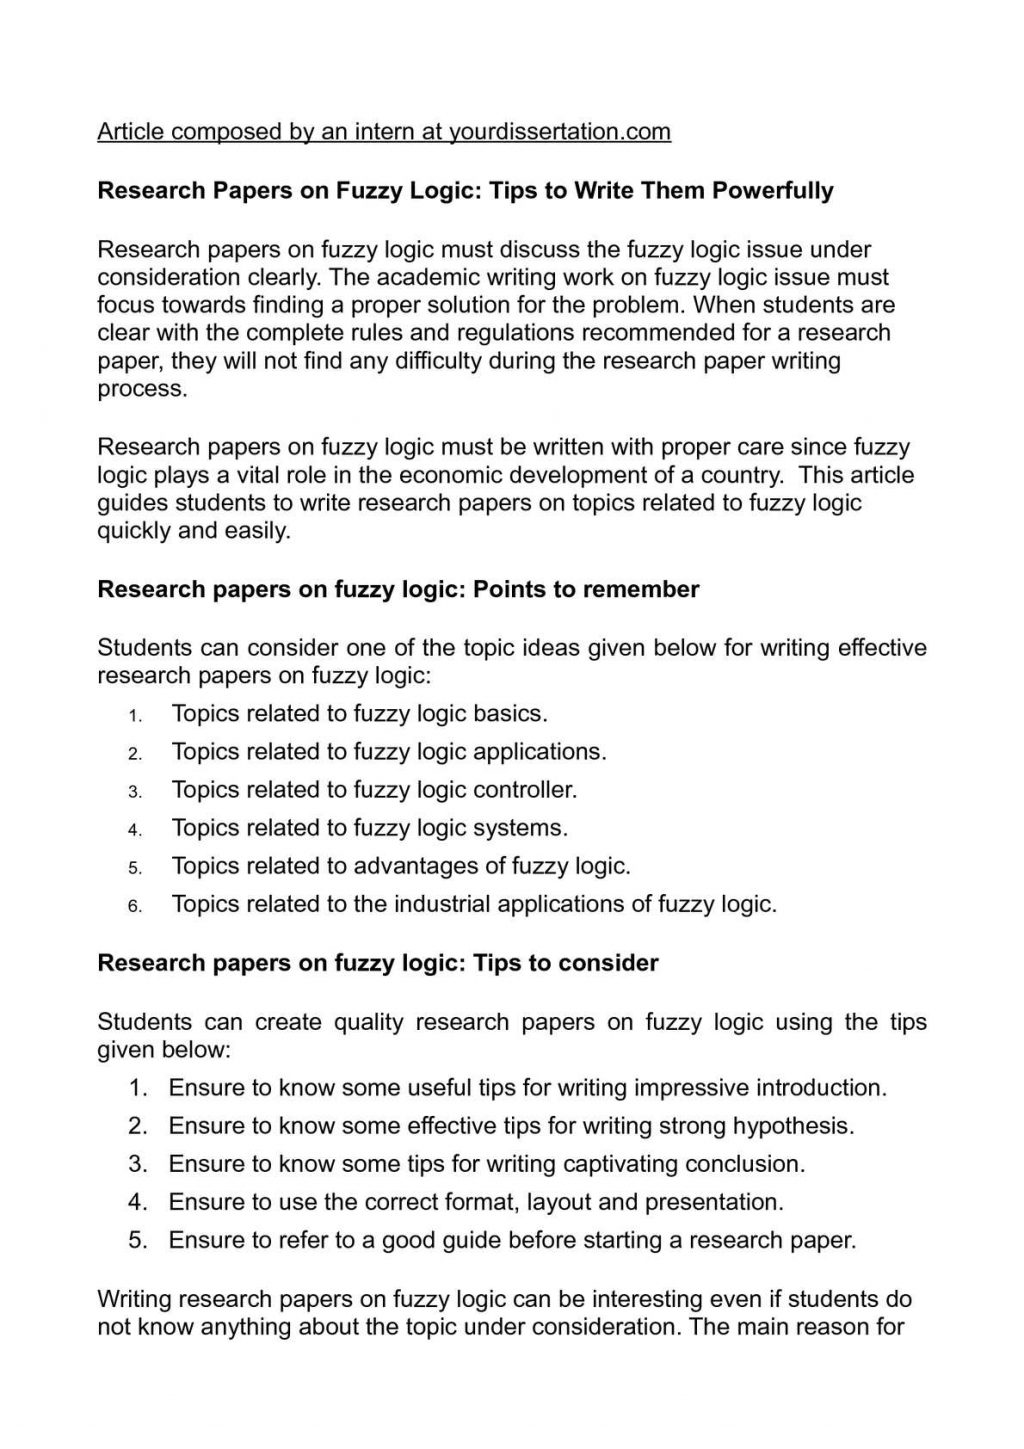 026 20research Paper Samples Fun Topics To Write On Psychology Economics20 1024x1449 About For Wonderful A Research Controversial Biology Full